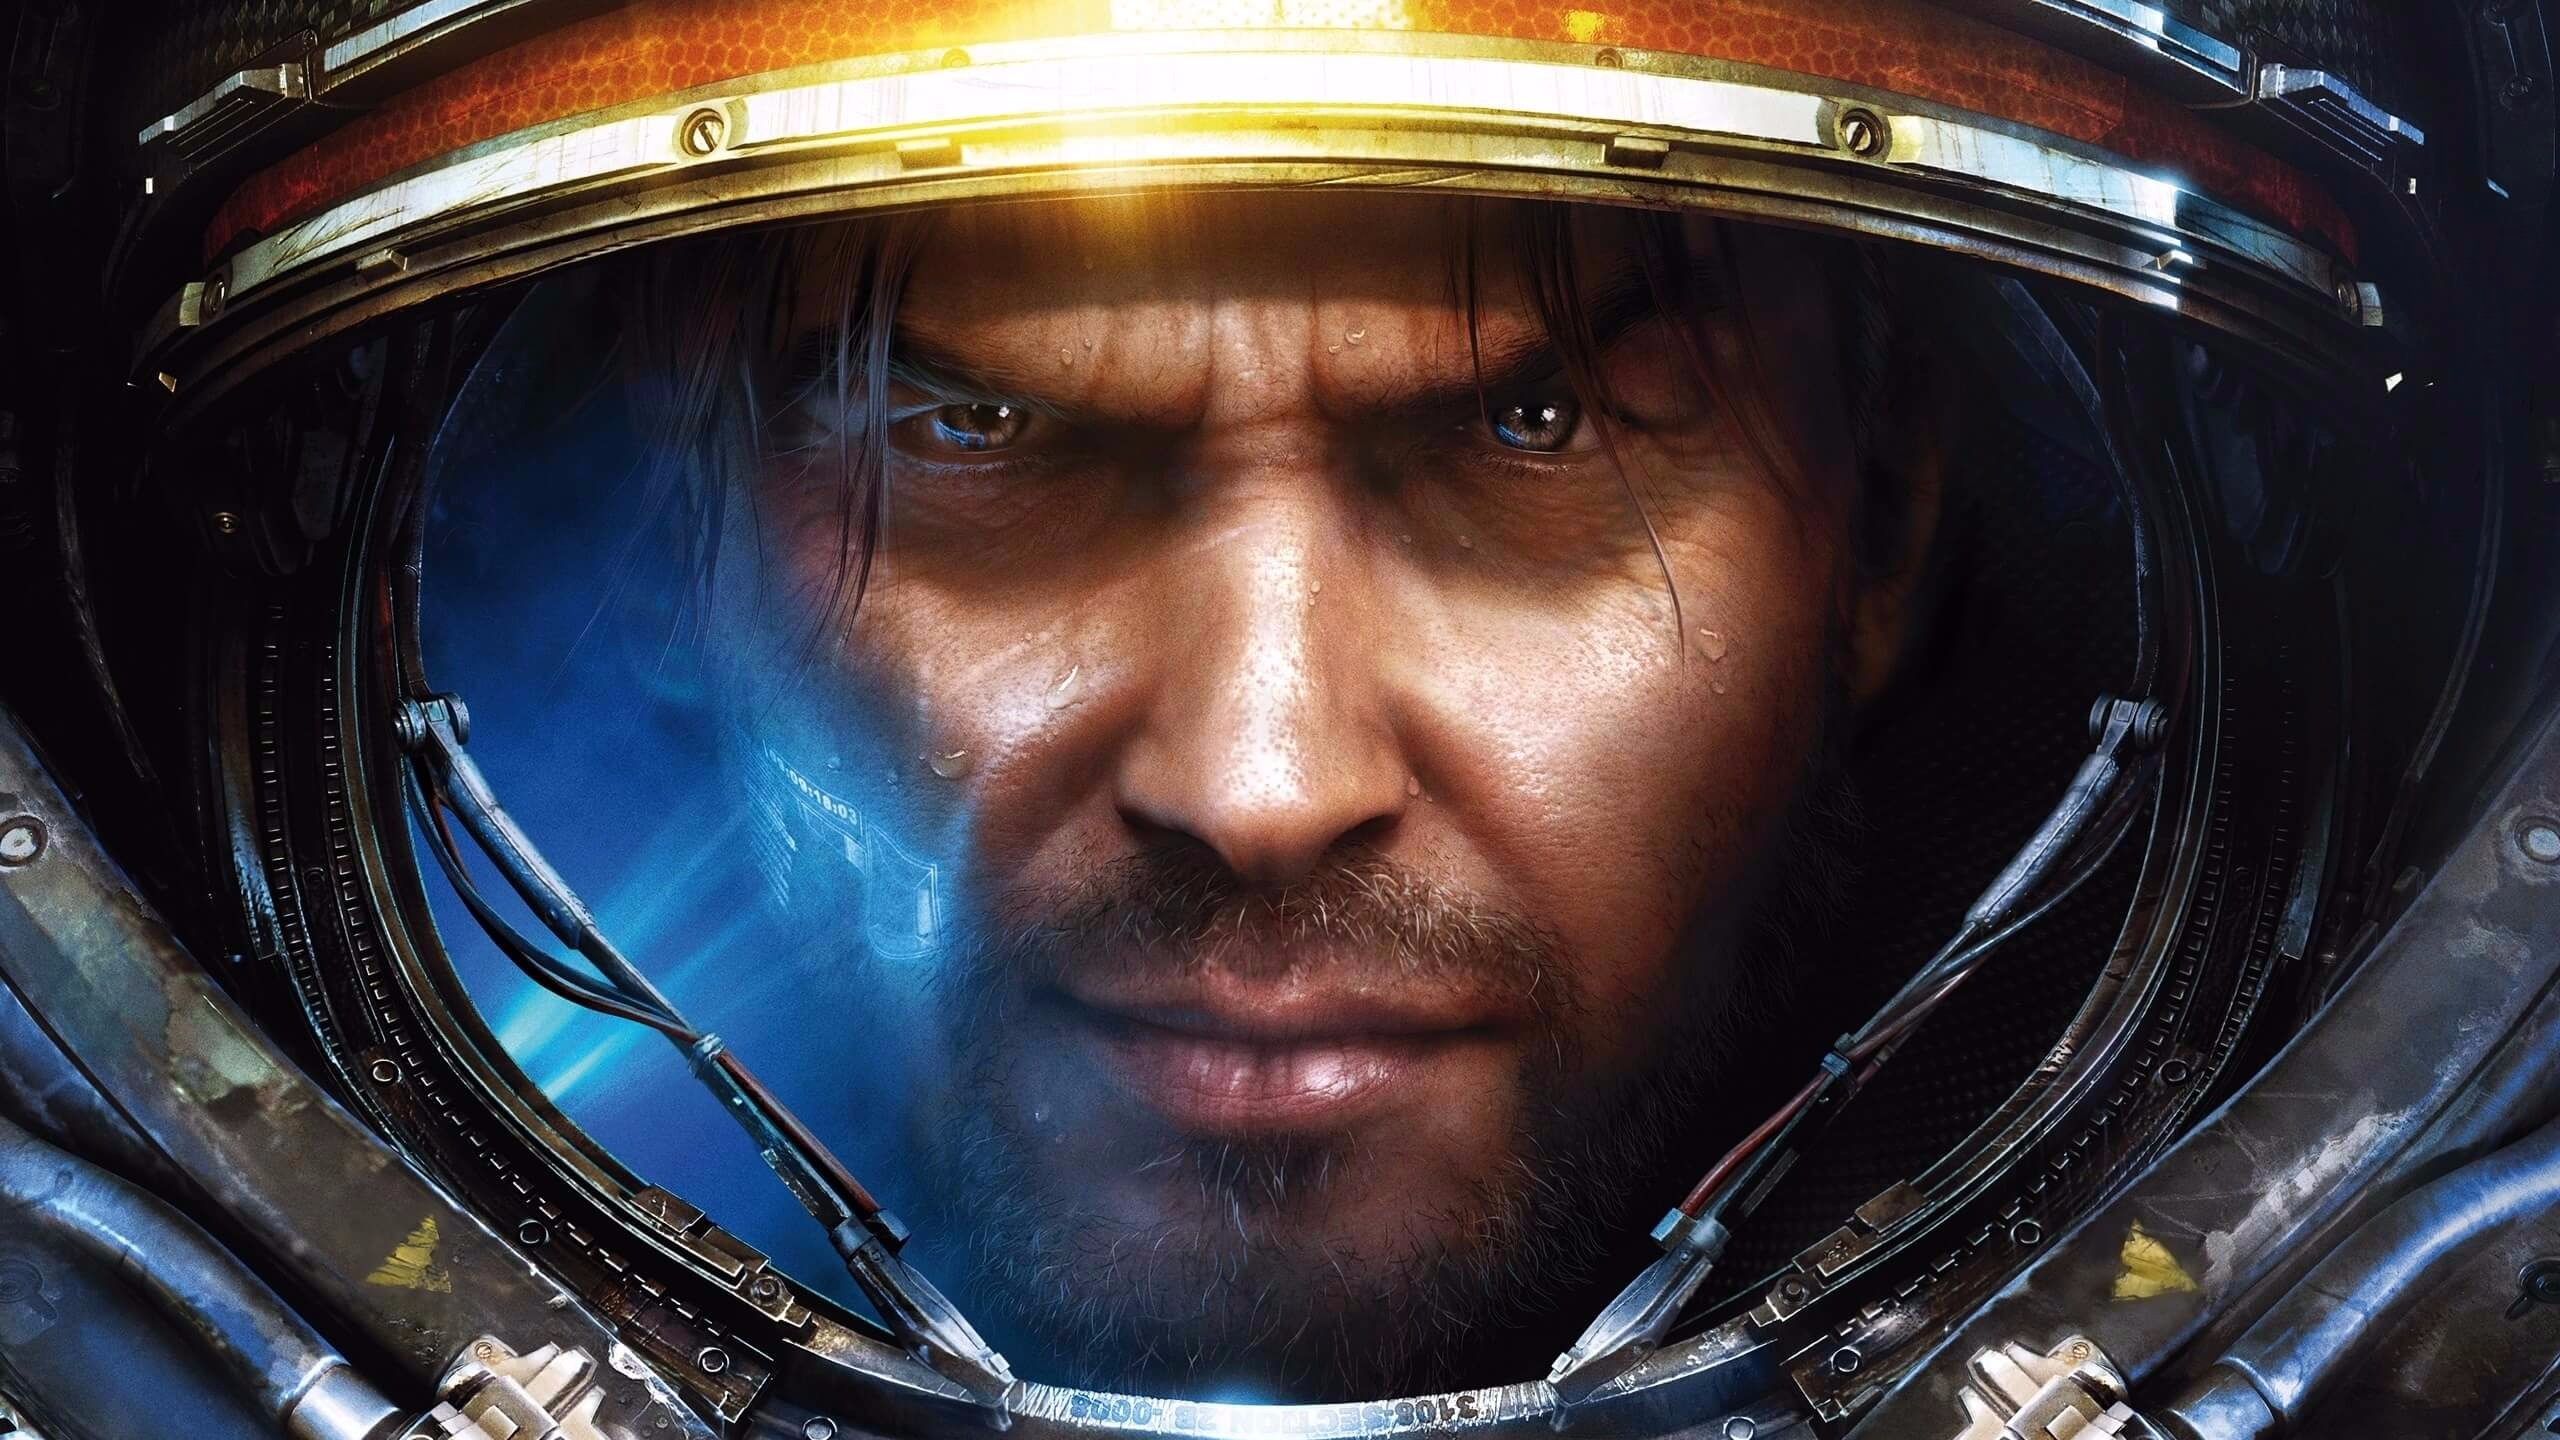 Metacritic le dio un score de 93 sobre 100 a StarCraft 2: Wings of Liberty.